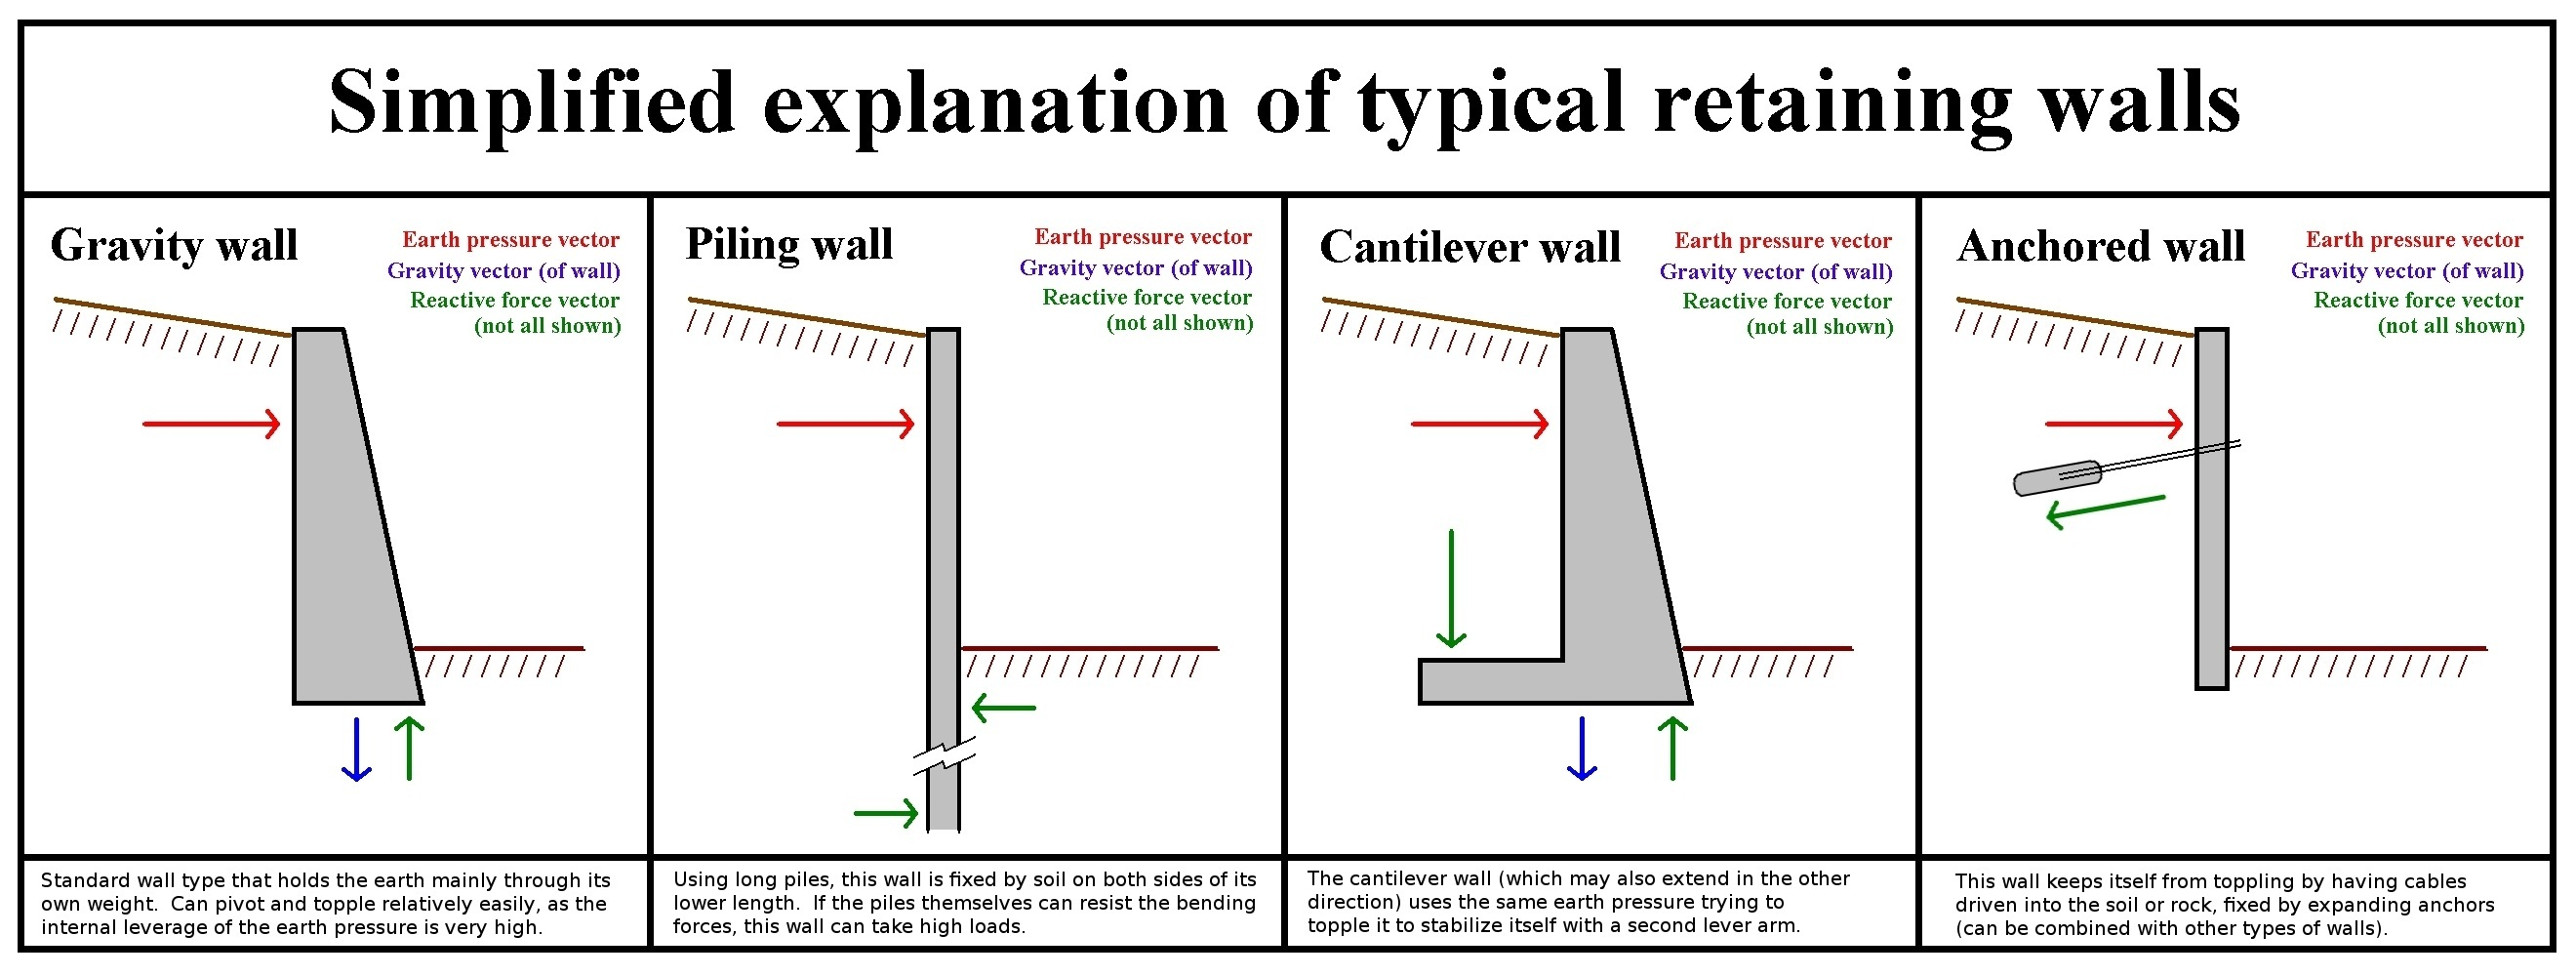 wood shear wall design example photo - 5